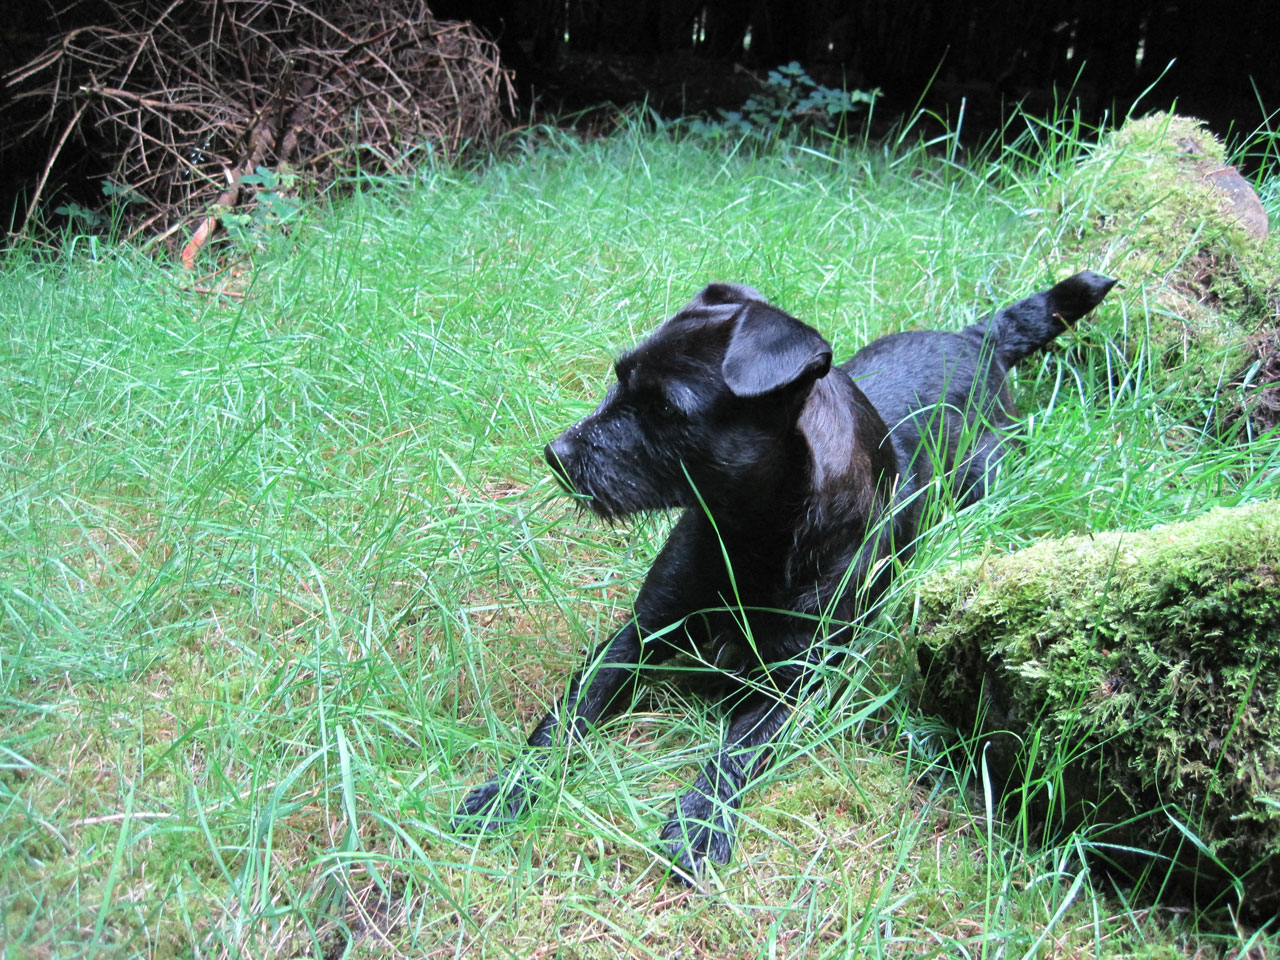 Patterdale Terrier in the grass wallpaper